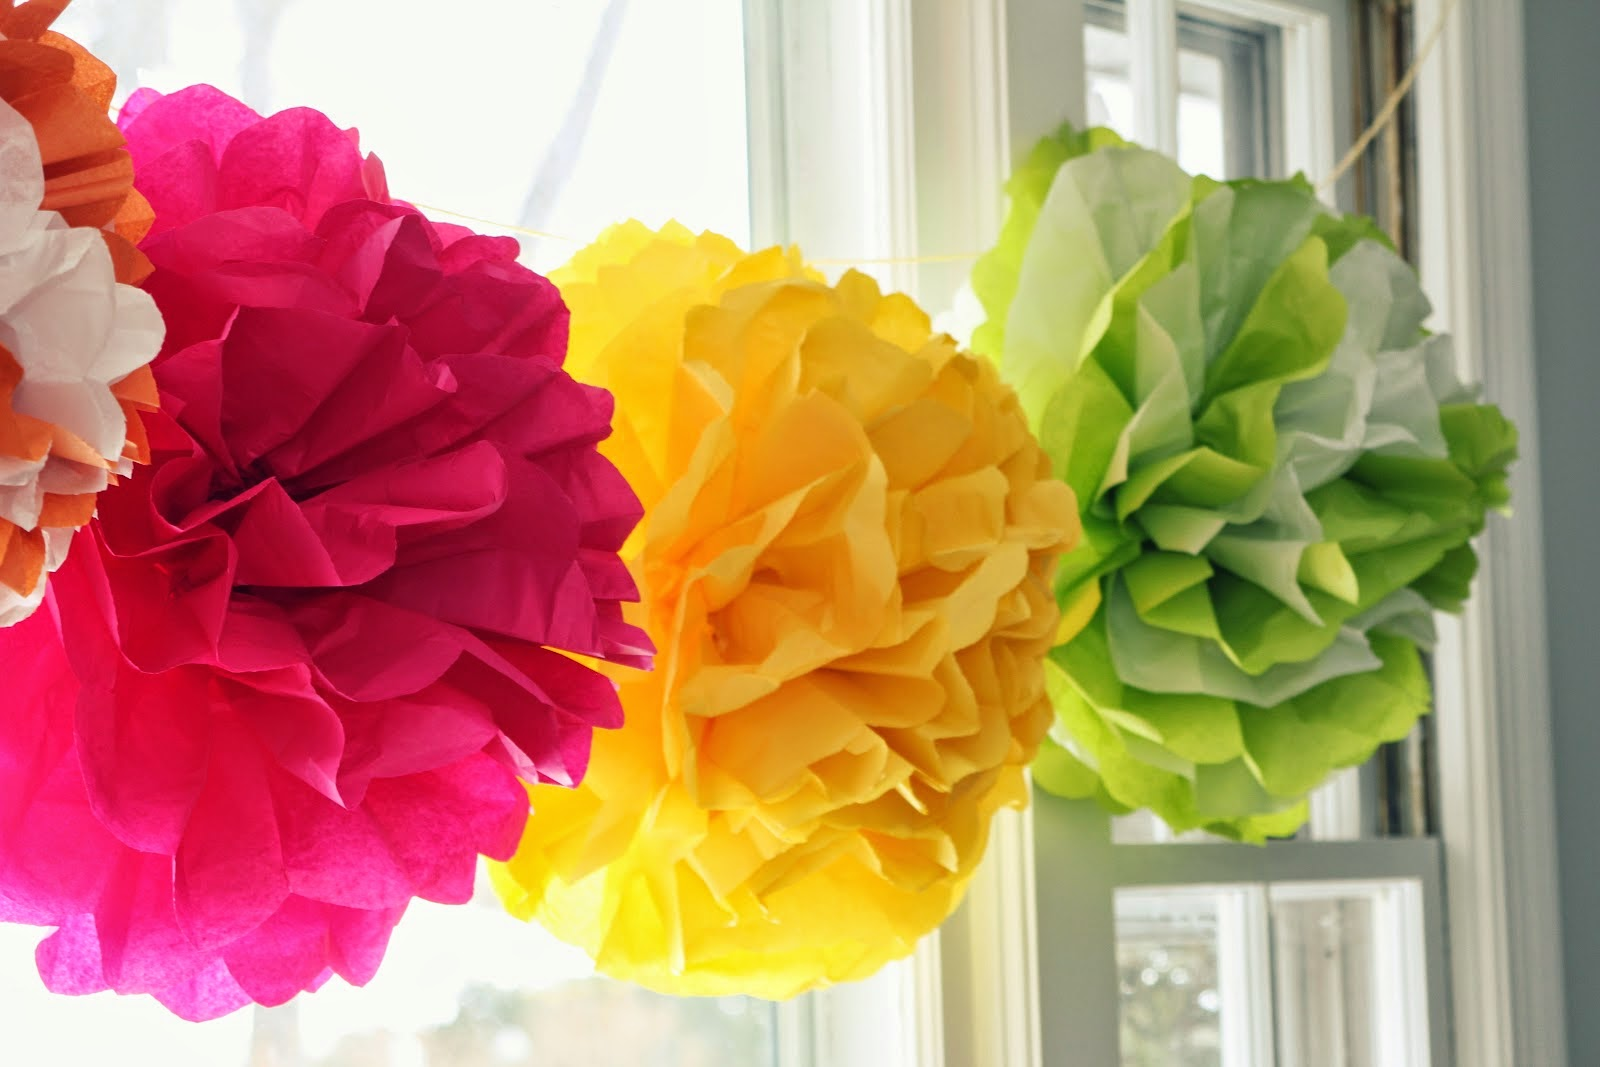 My Own Party Ideas Diy Tissue Pom Poms